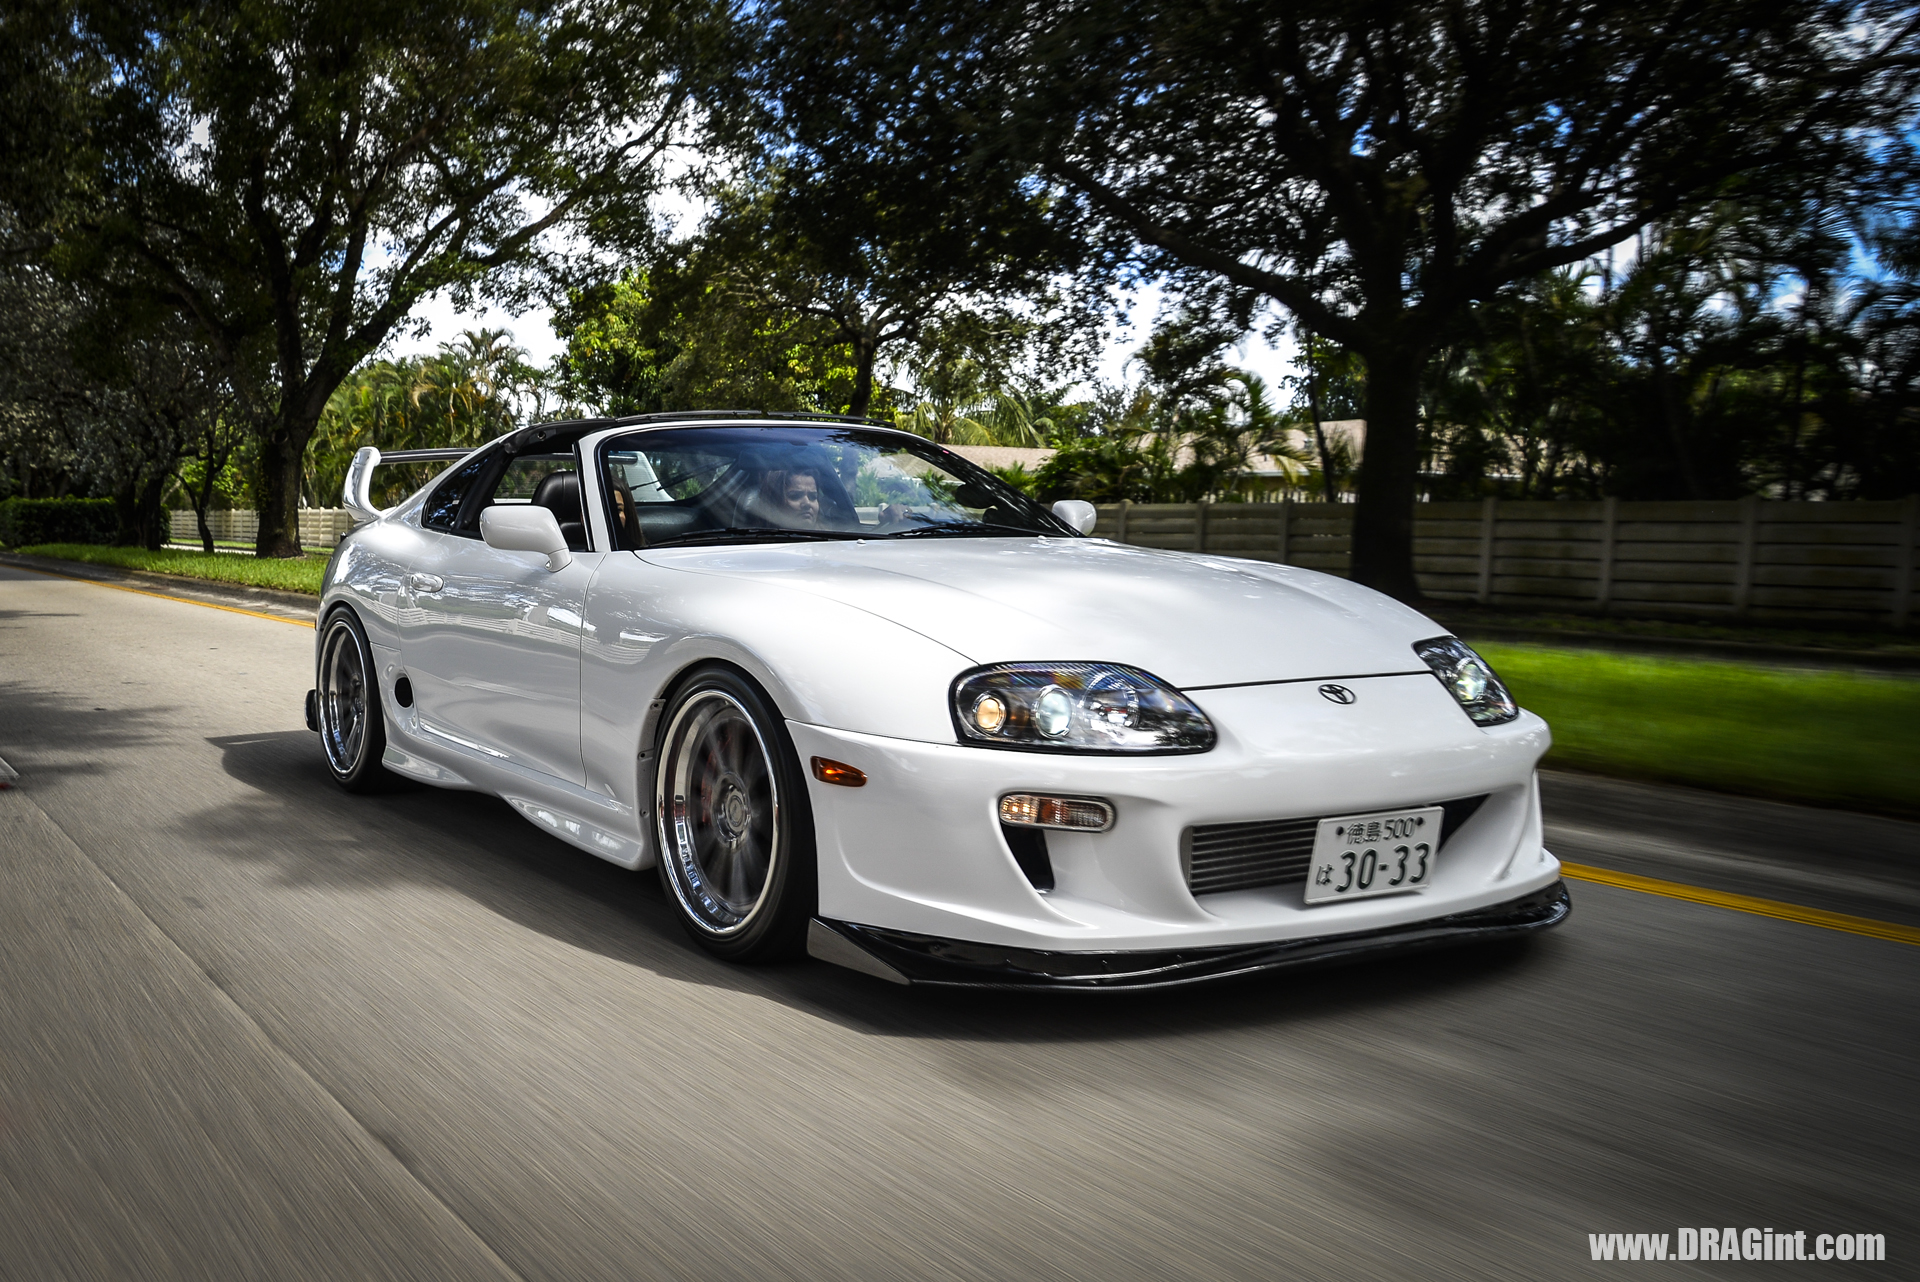 DRAGint.com Project White Heat U2013 Supra Turbo 6 Speed + JDM Flare + 1050 HP